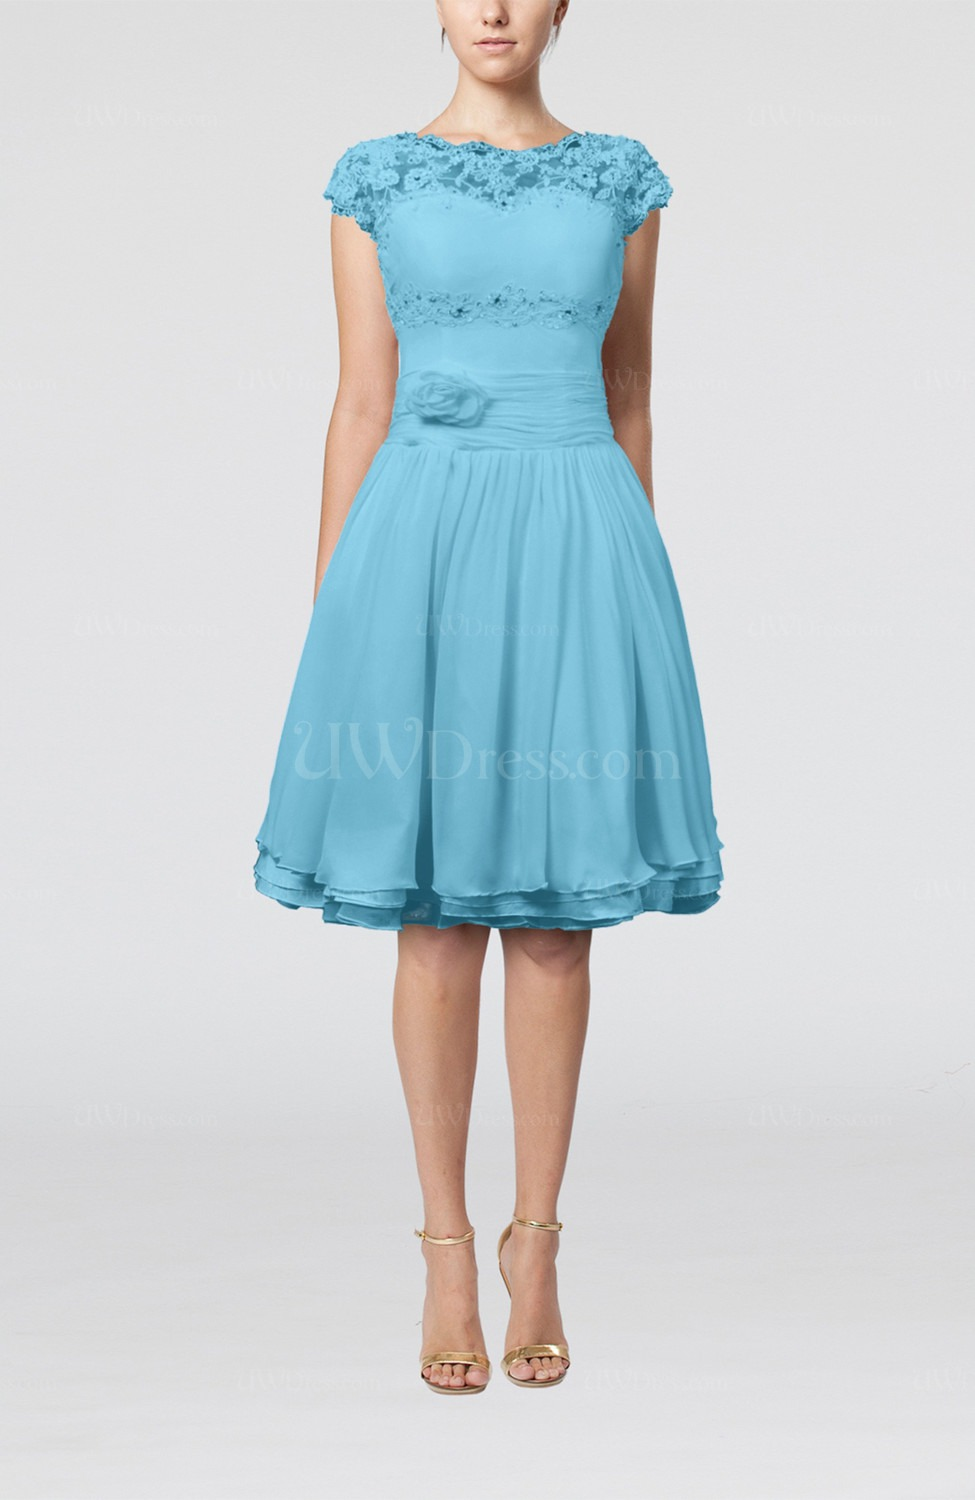 light blue bridesmaid dresses with sleevesCherry Marry | Cherry Marry